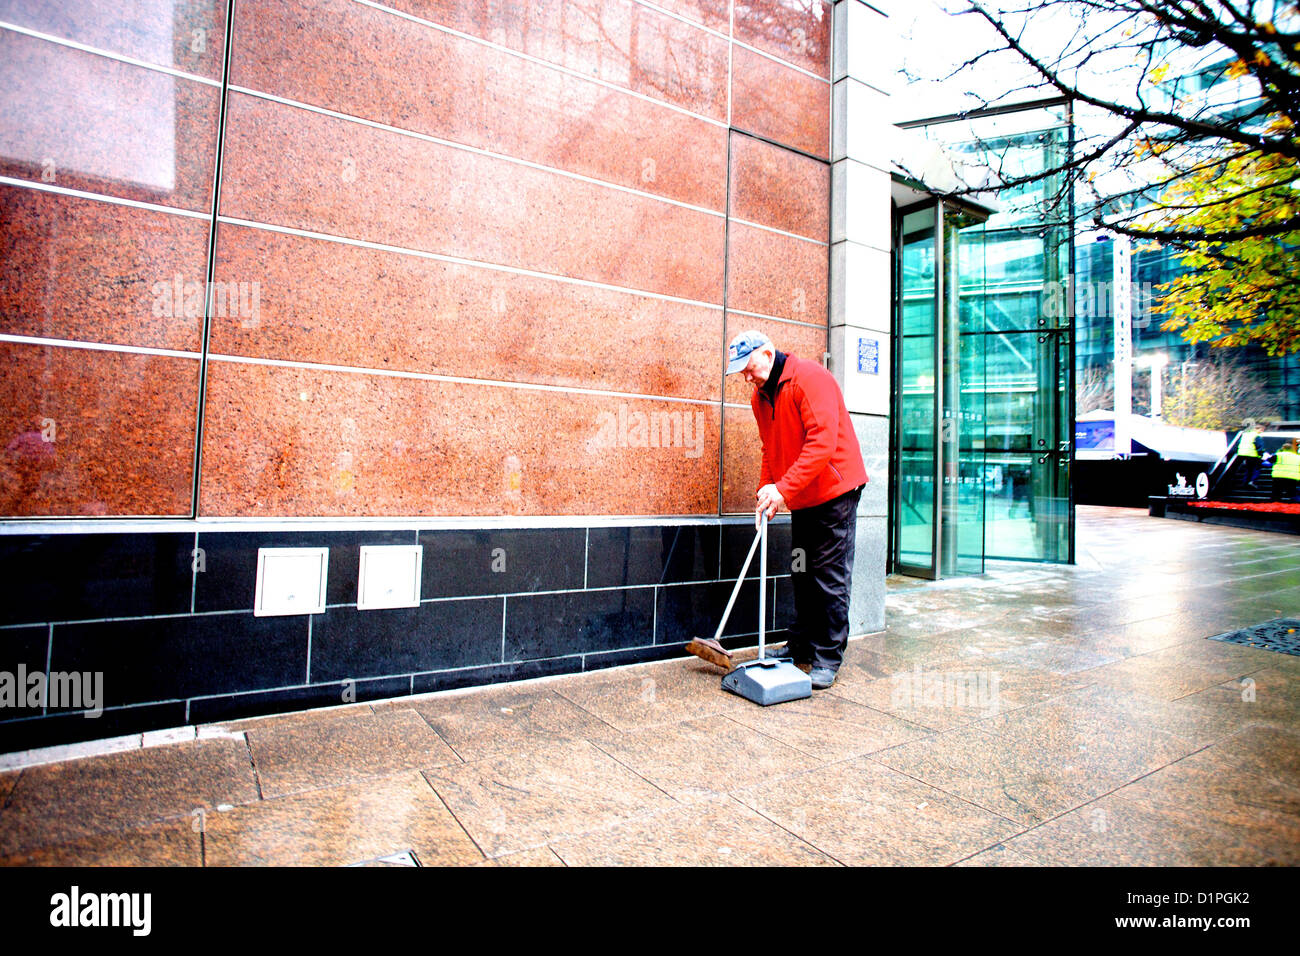 Elderly man in red jacket sweeping rubbish into container around an office block in Canary Wharf, London. - Stock Image